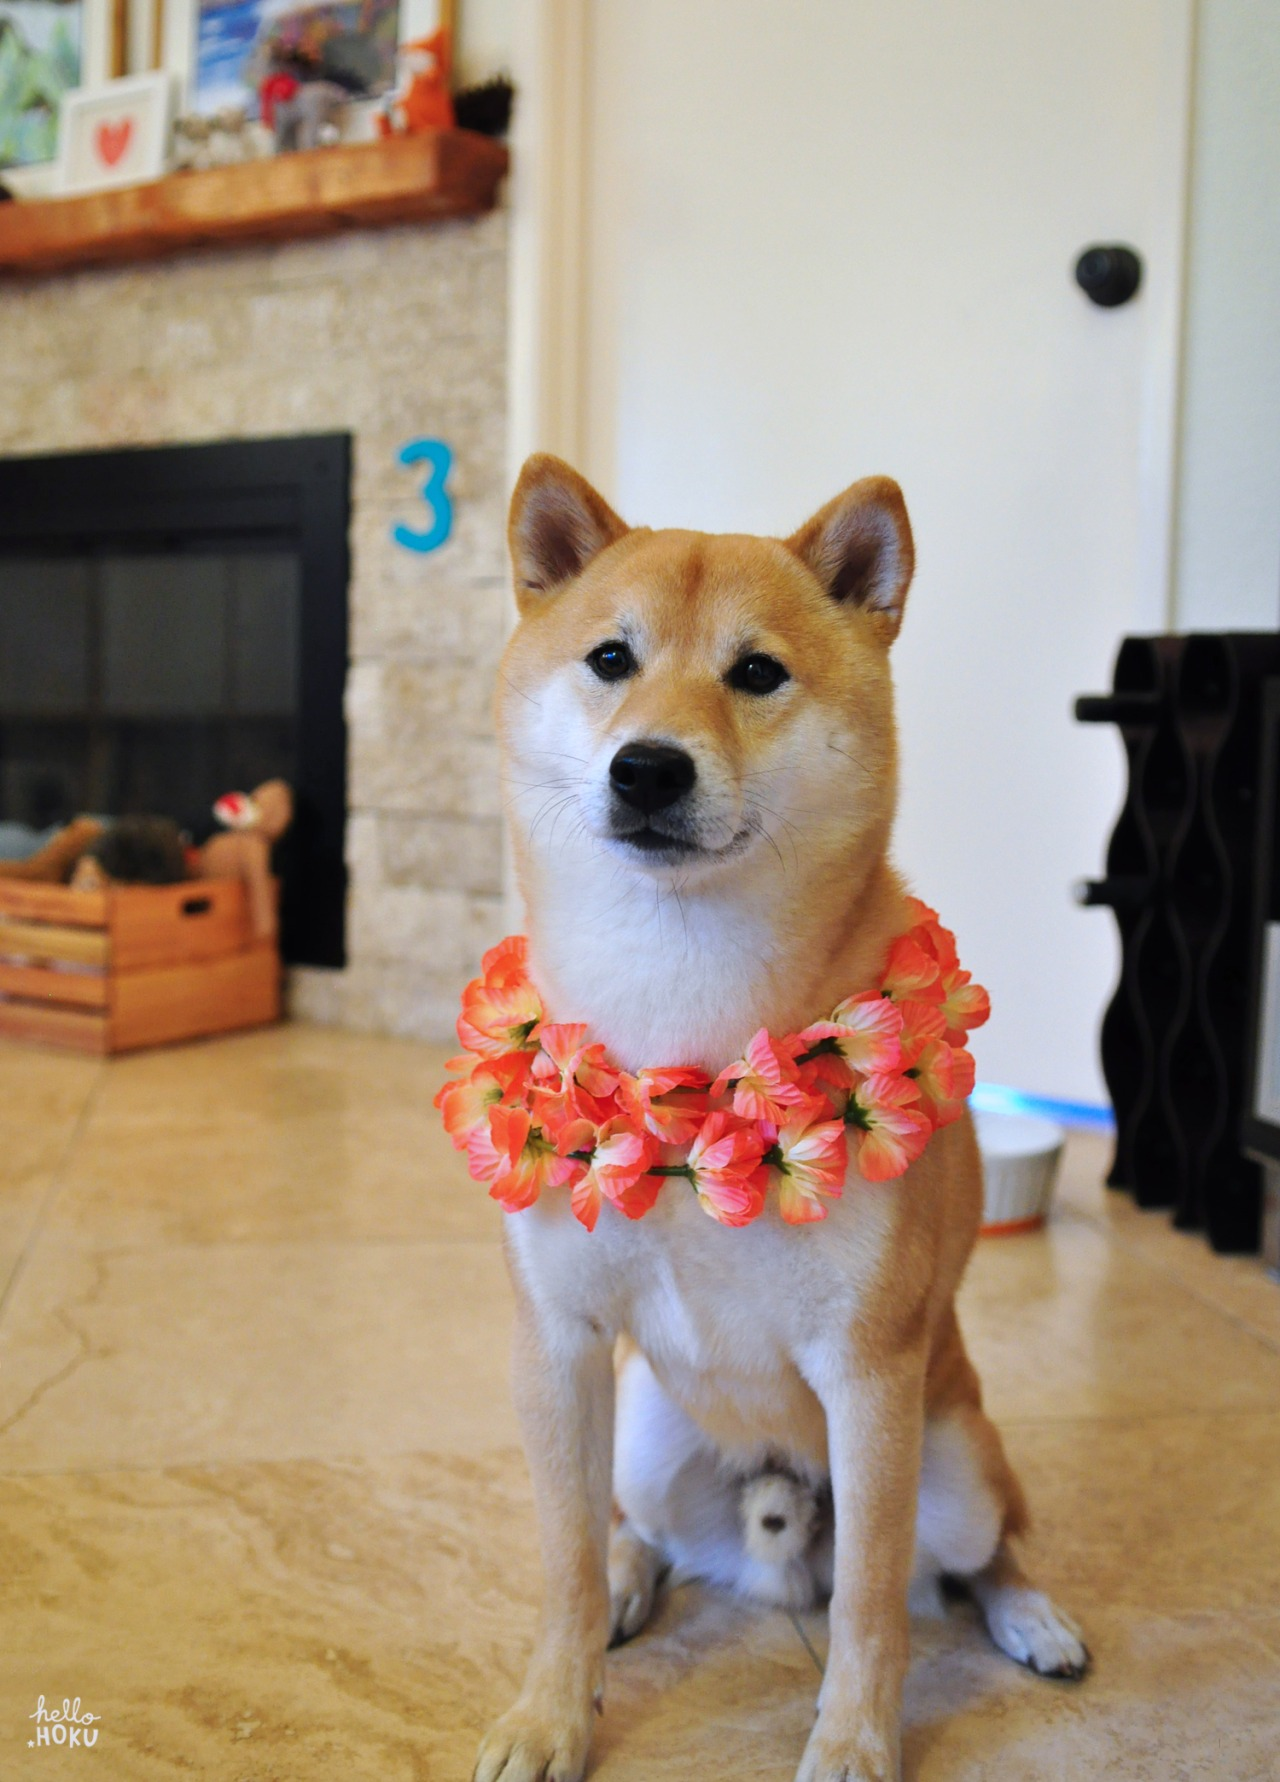 In true Hawaiian fashion, someone just got lei'd for his birthday. Happy 3rd birthday Hoku! Wishing you many more years of health and happiness with us. To celebrate, David will be making Hoku a delicious filet mignon for dinner. (We don't even eat steaks that good.) Lucky birthday dog!